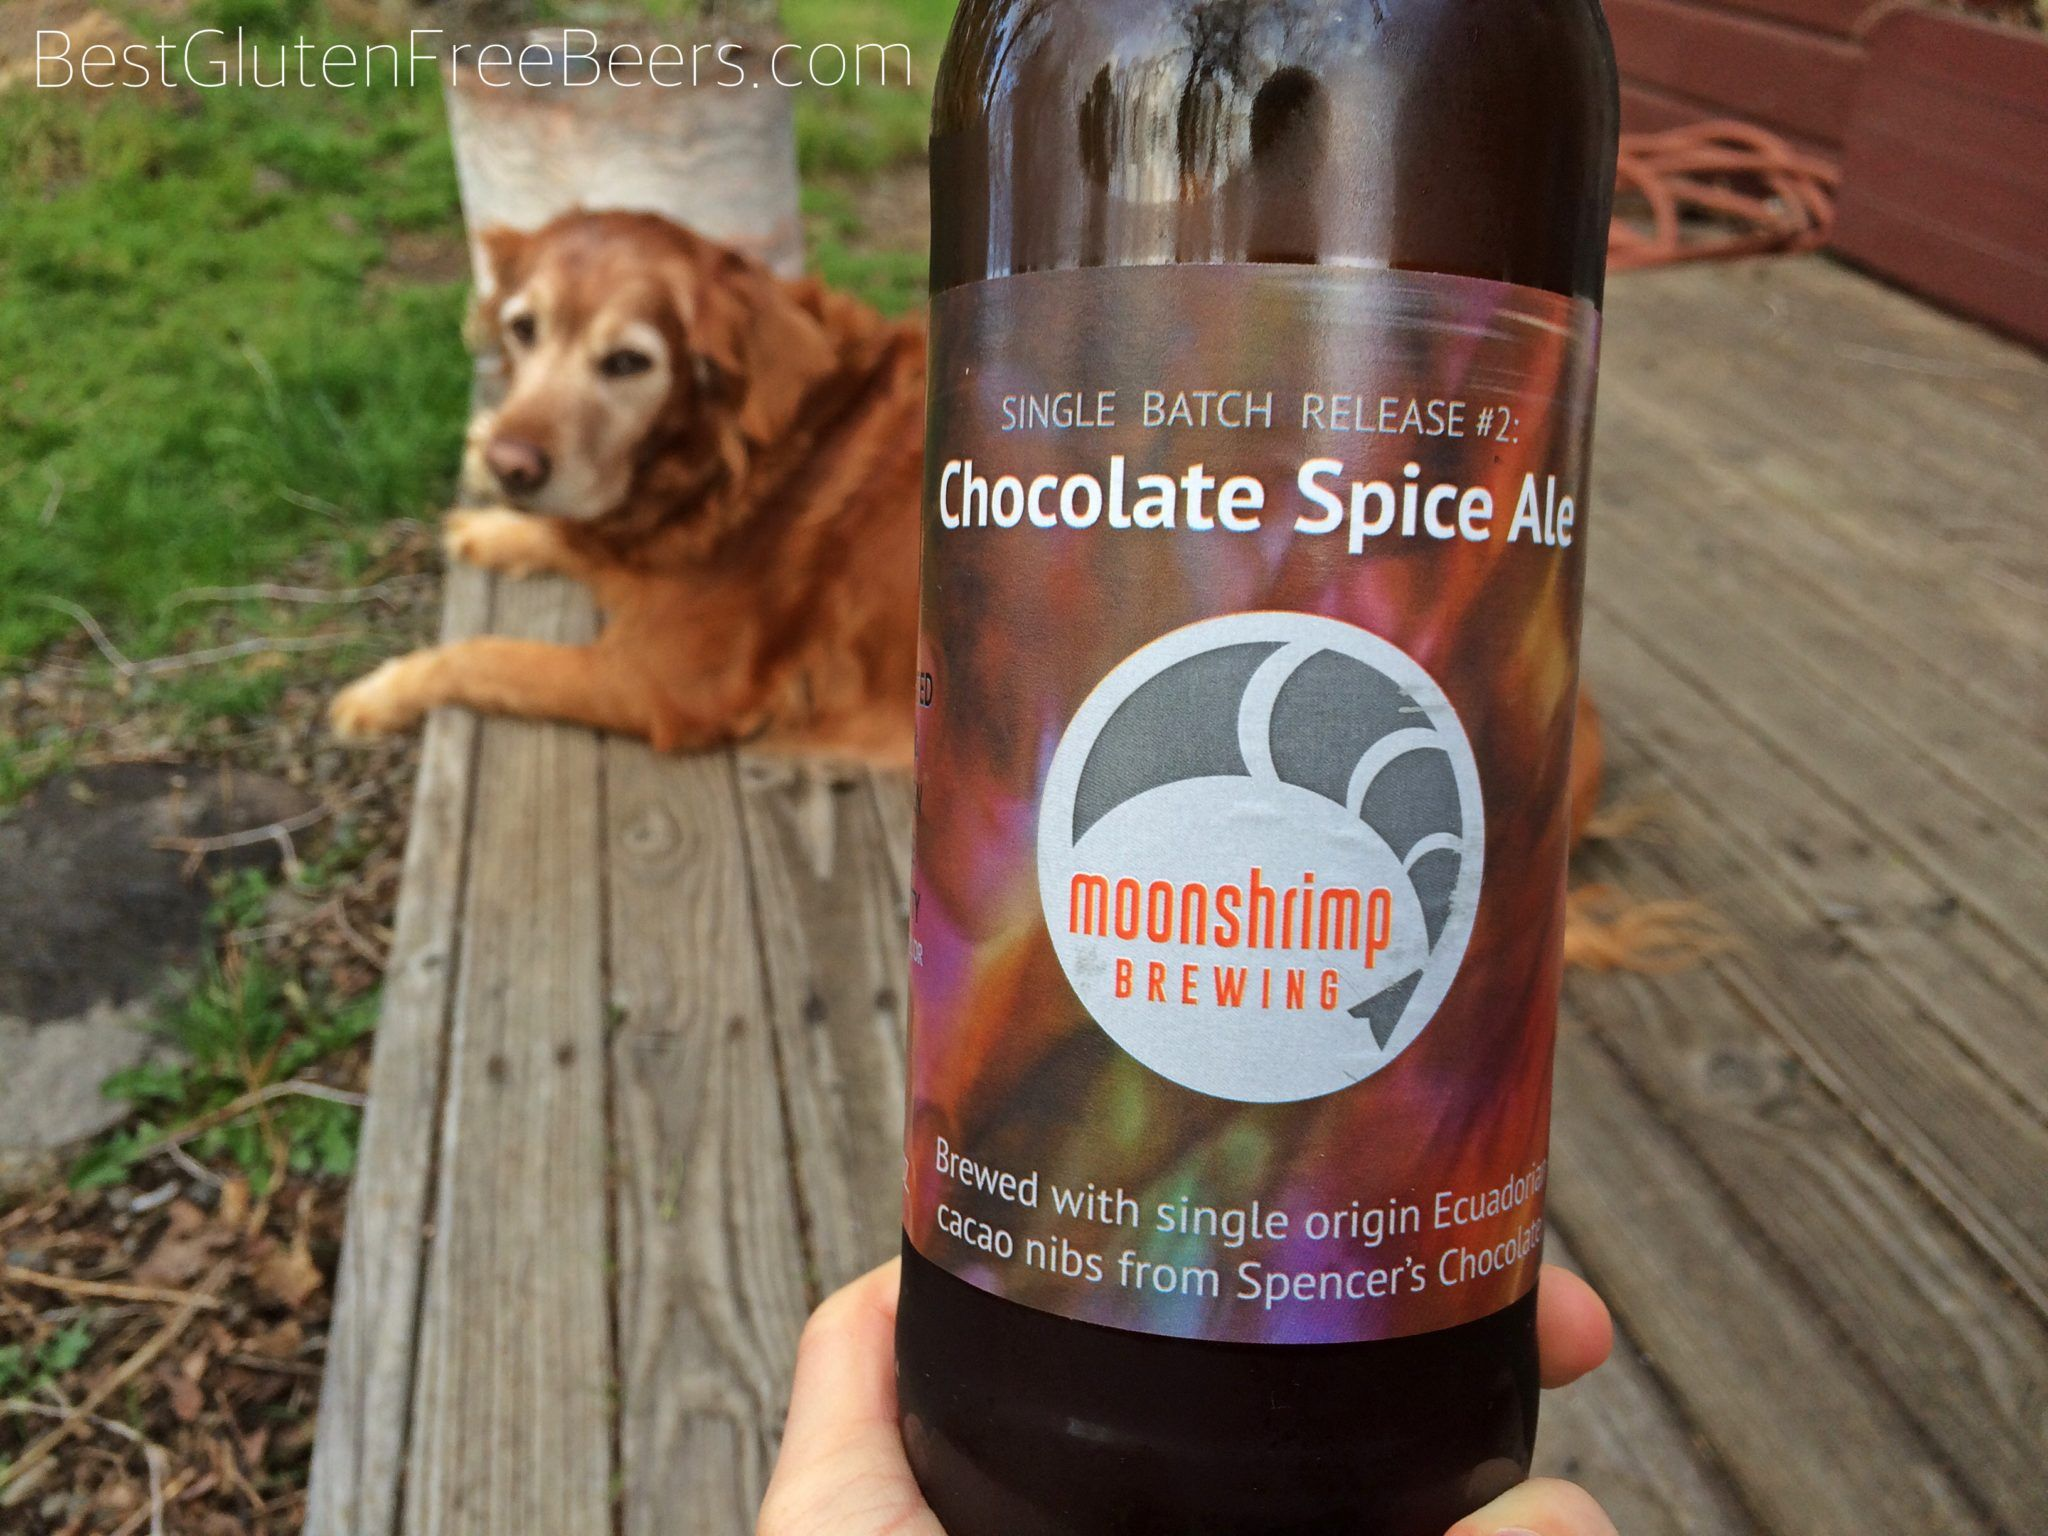 Gluten Free Beer Review Moonshrimp Brewing Chocolate Spice Ale